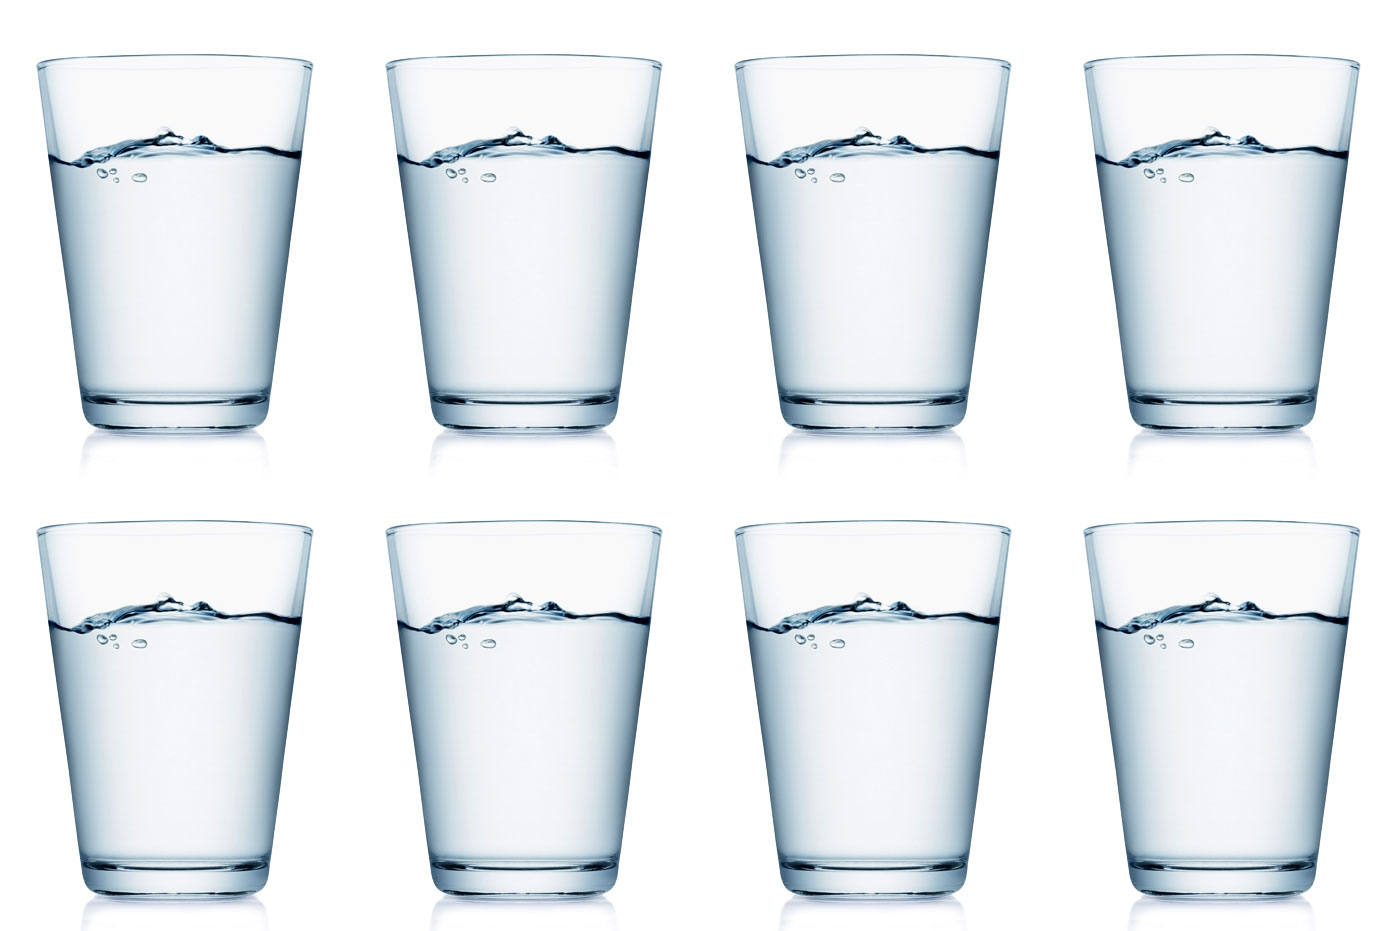 MYTH: You need eight glasses of water a day